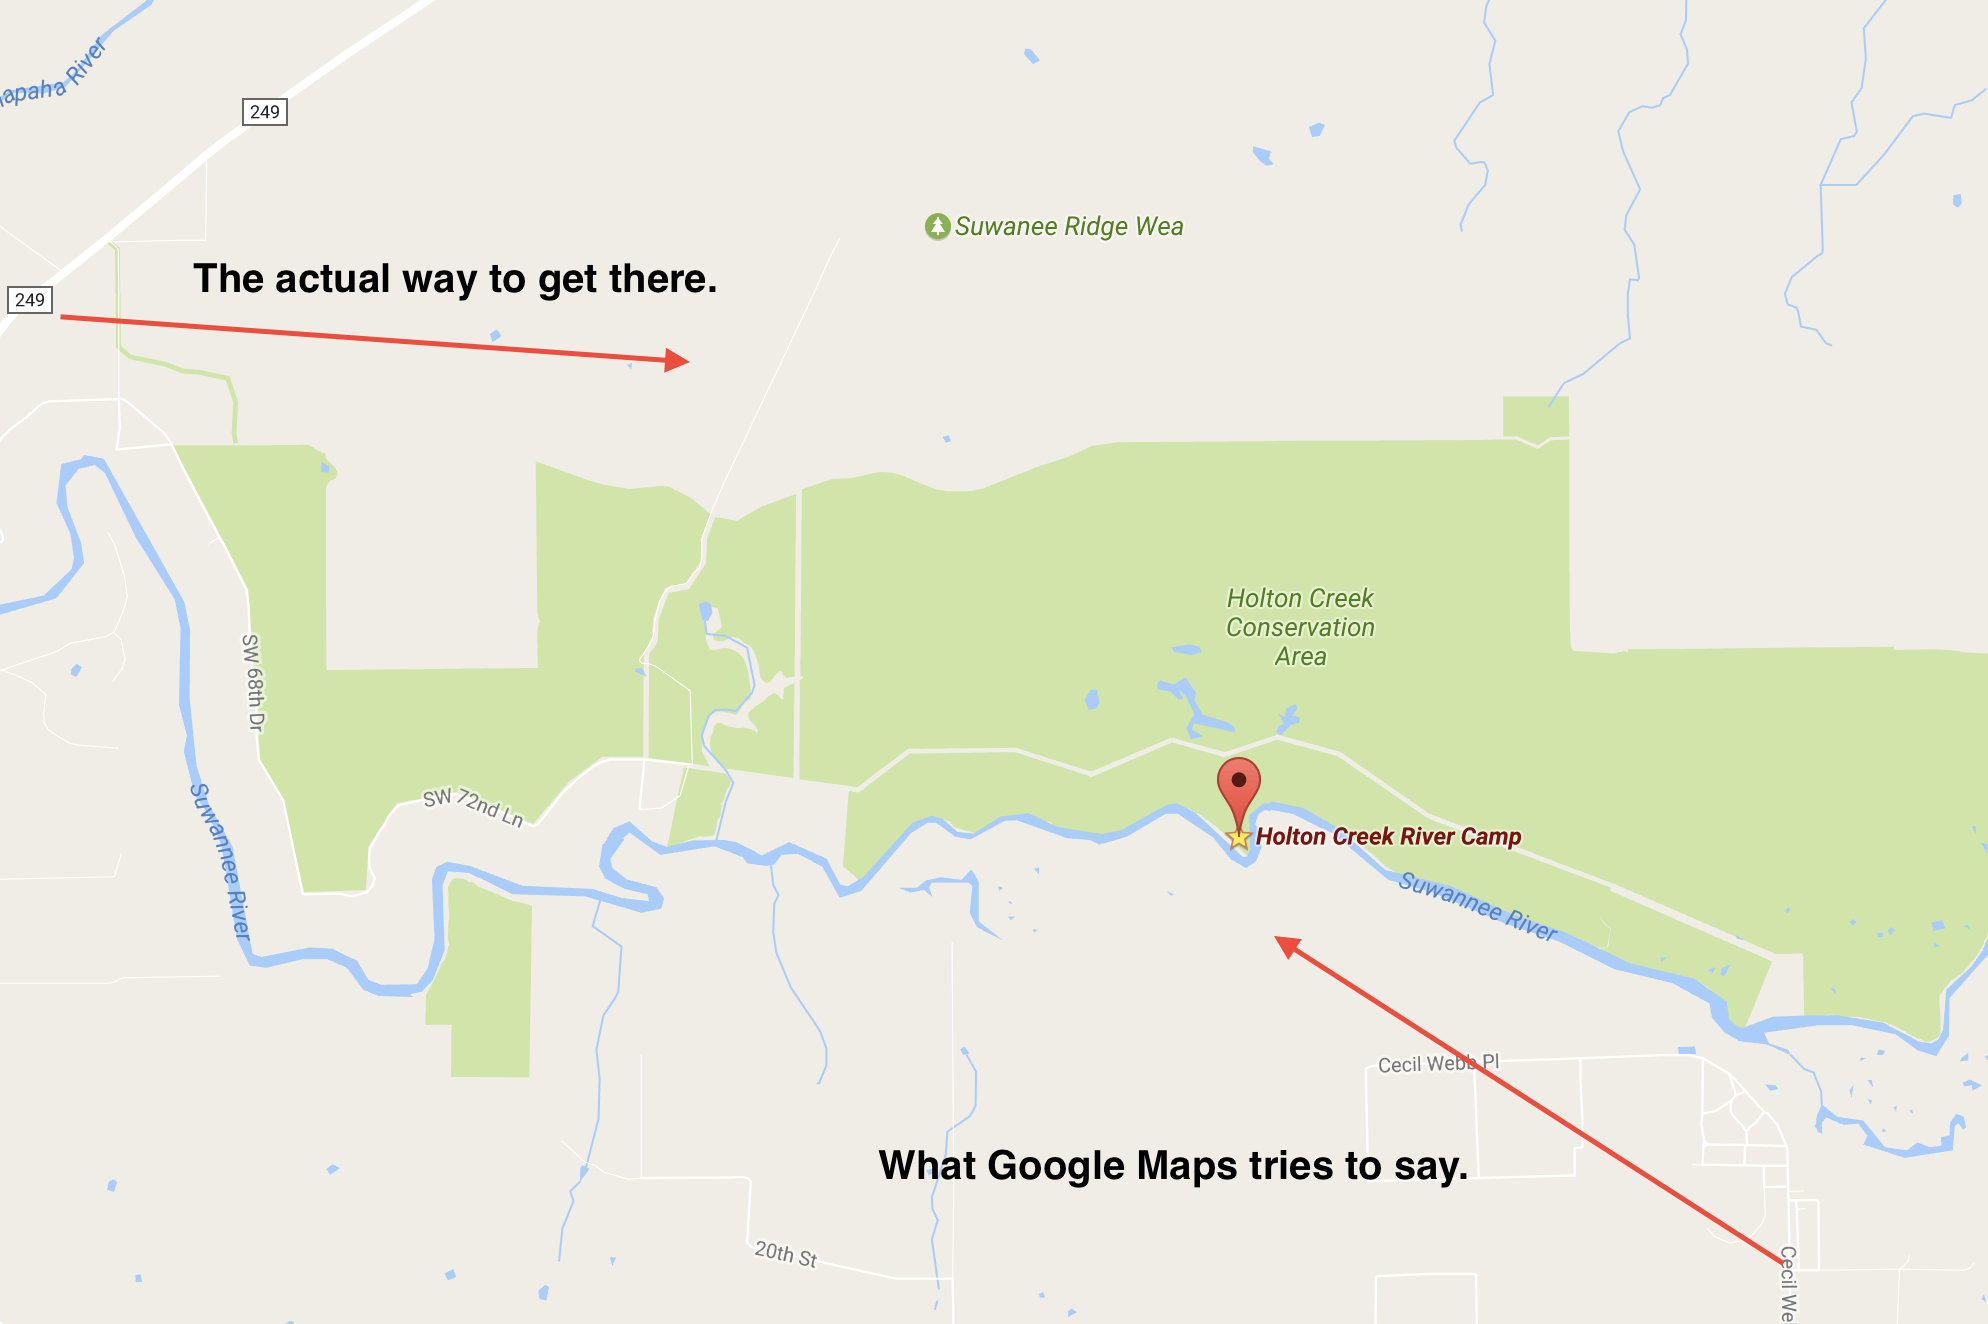 Google assumes that there is a magical bridge that goes from the south side to the north side; there isn't, just private property.